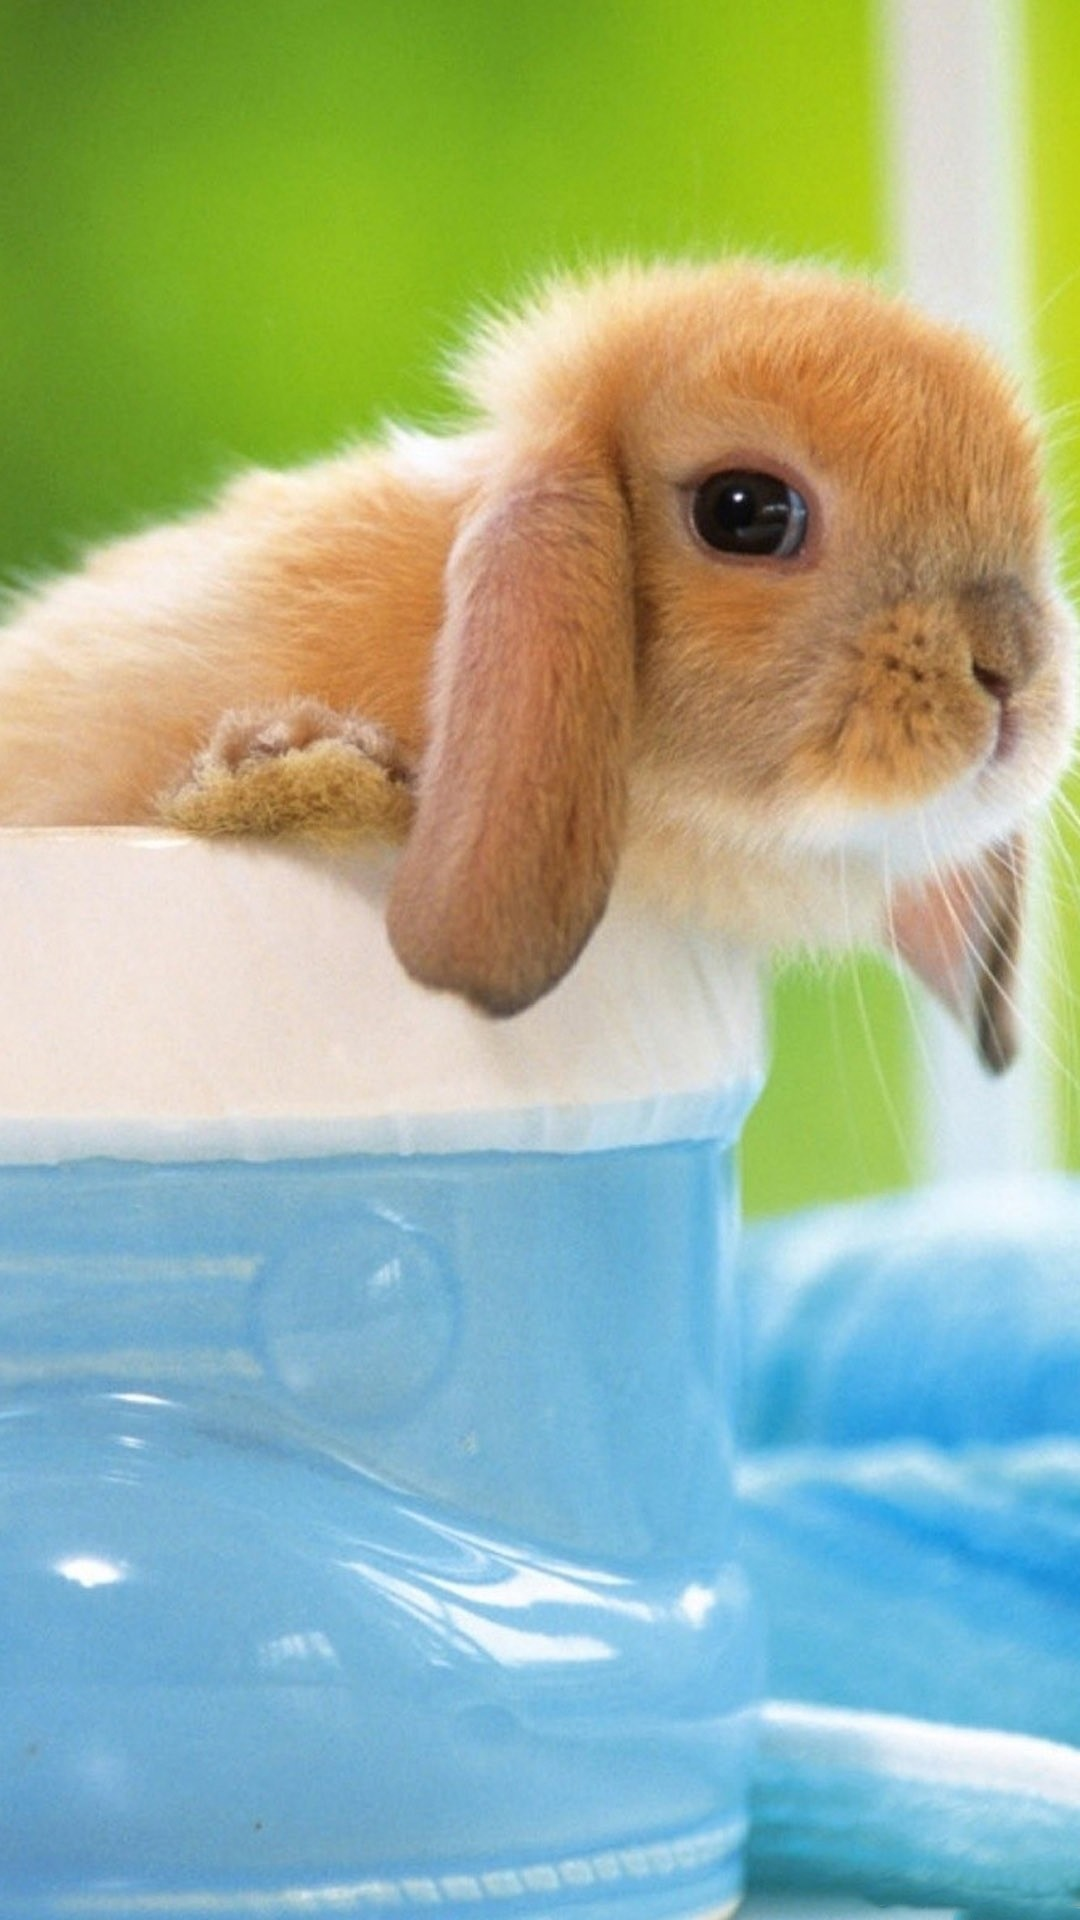 Cute Bunny Wallpapers 68 Images